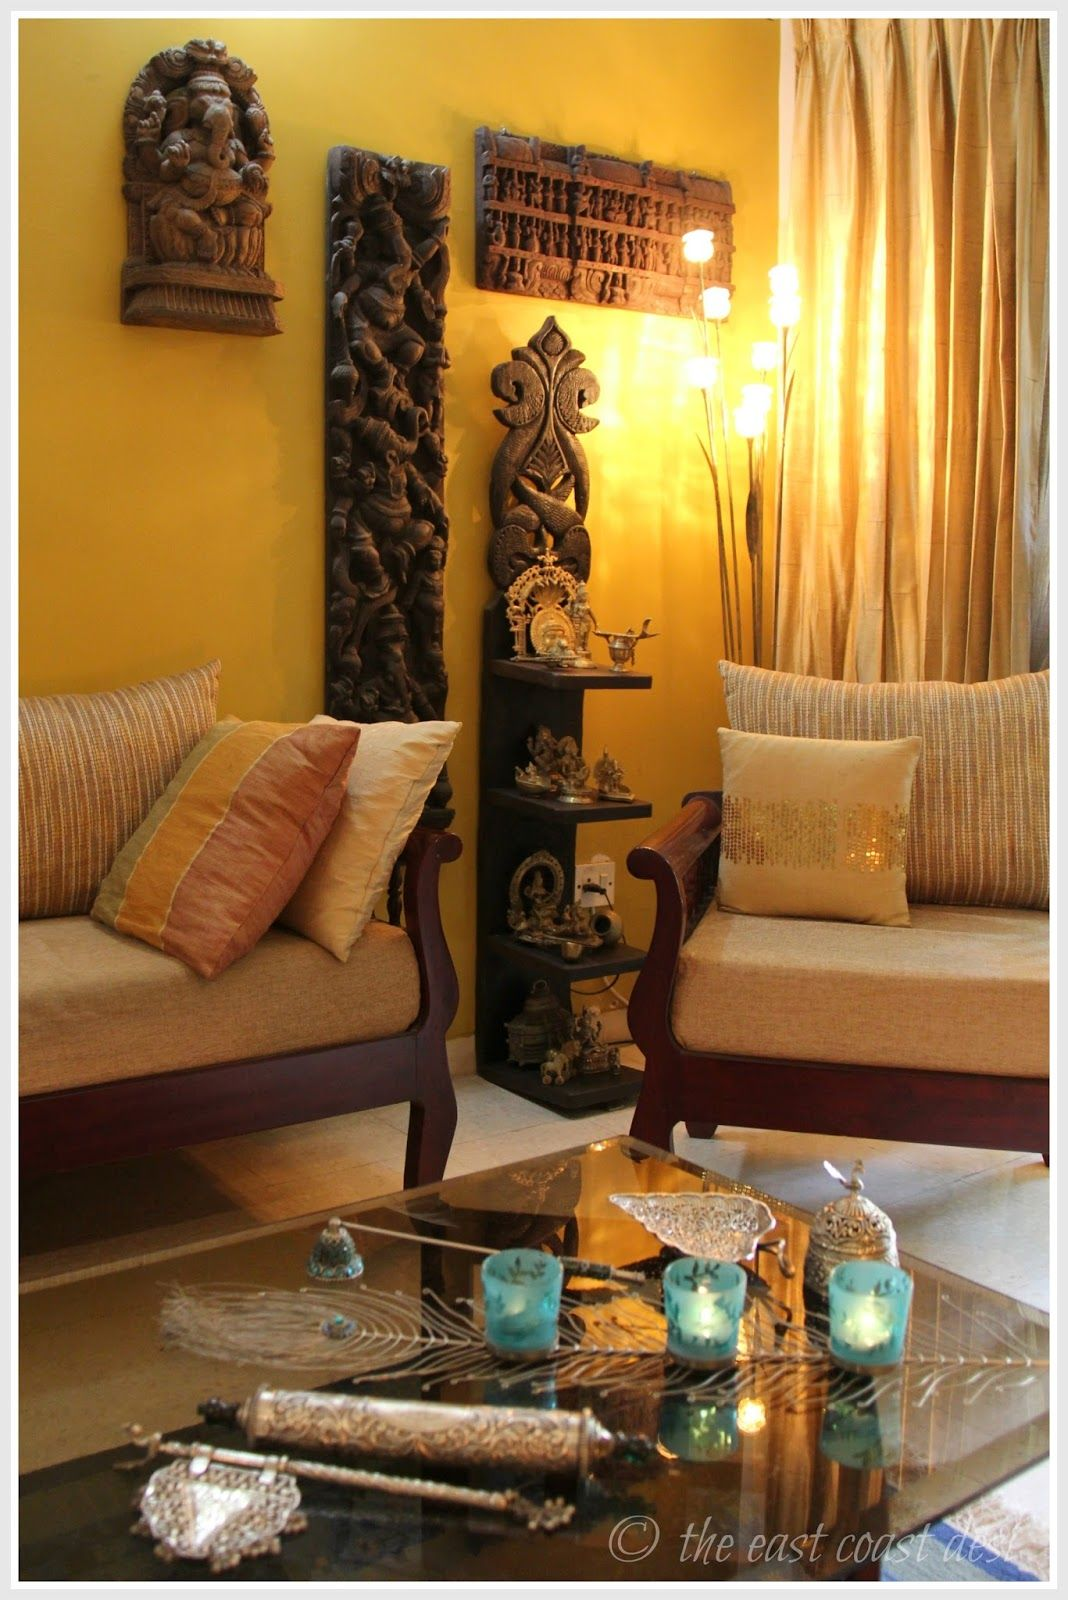 Indian Home Decoration The East Coast Desi Living With What You Love Home Tour